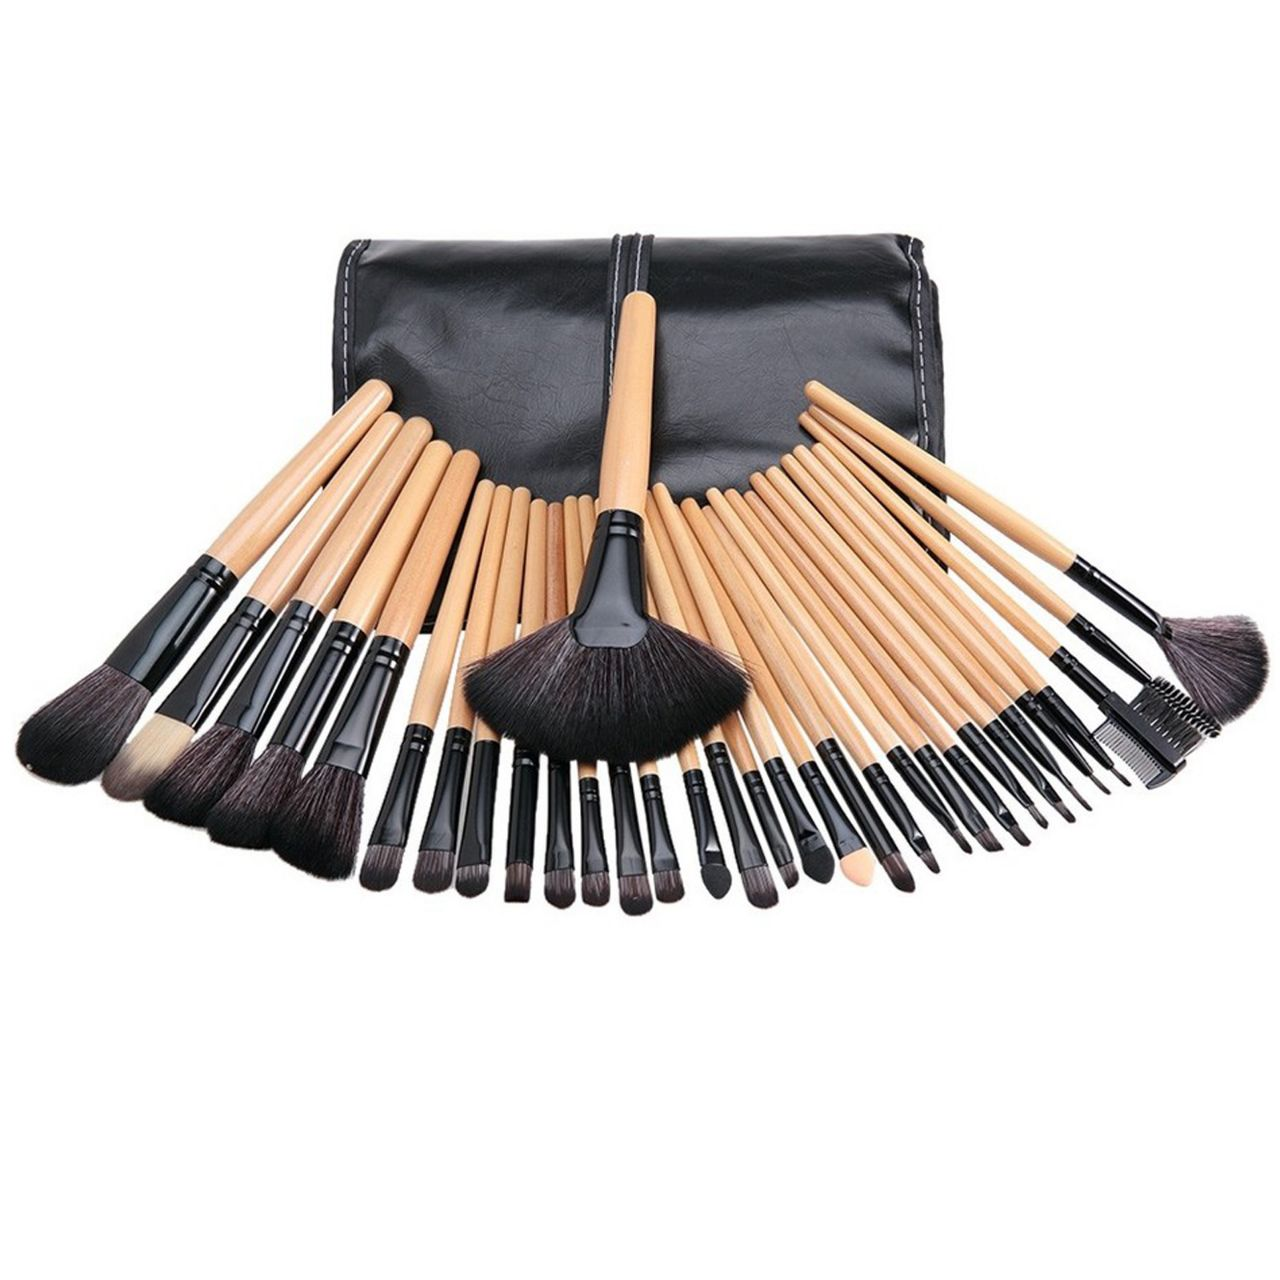 Glamza 32 Piece Wooden Makeup Brush Set, Makeup Tools by Forever Cosmetics